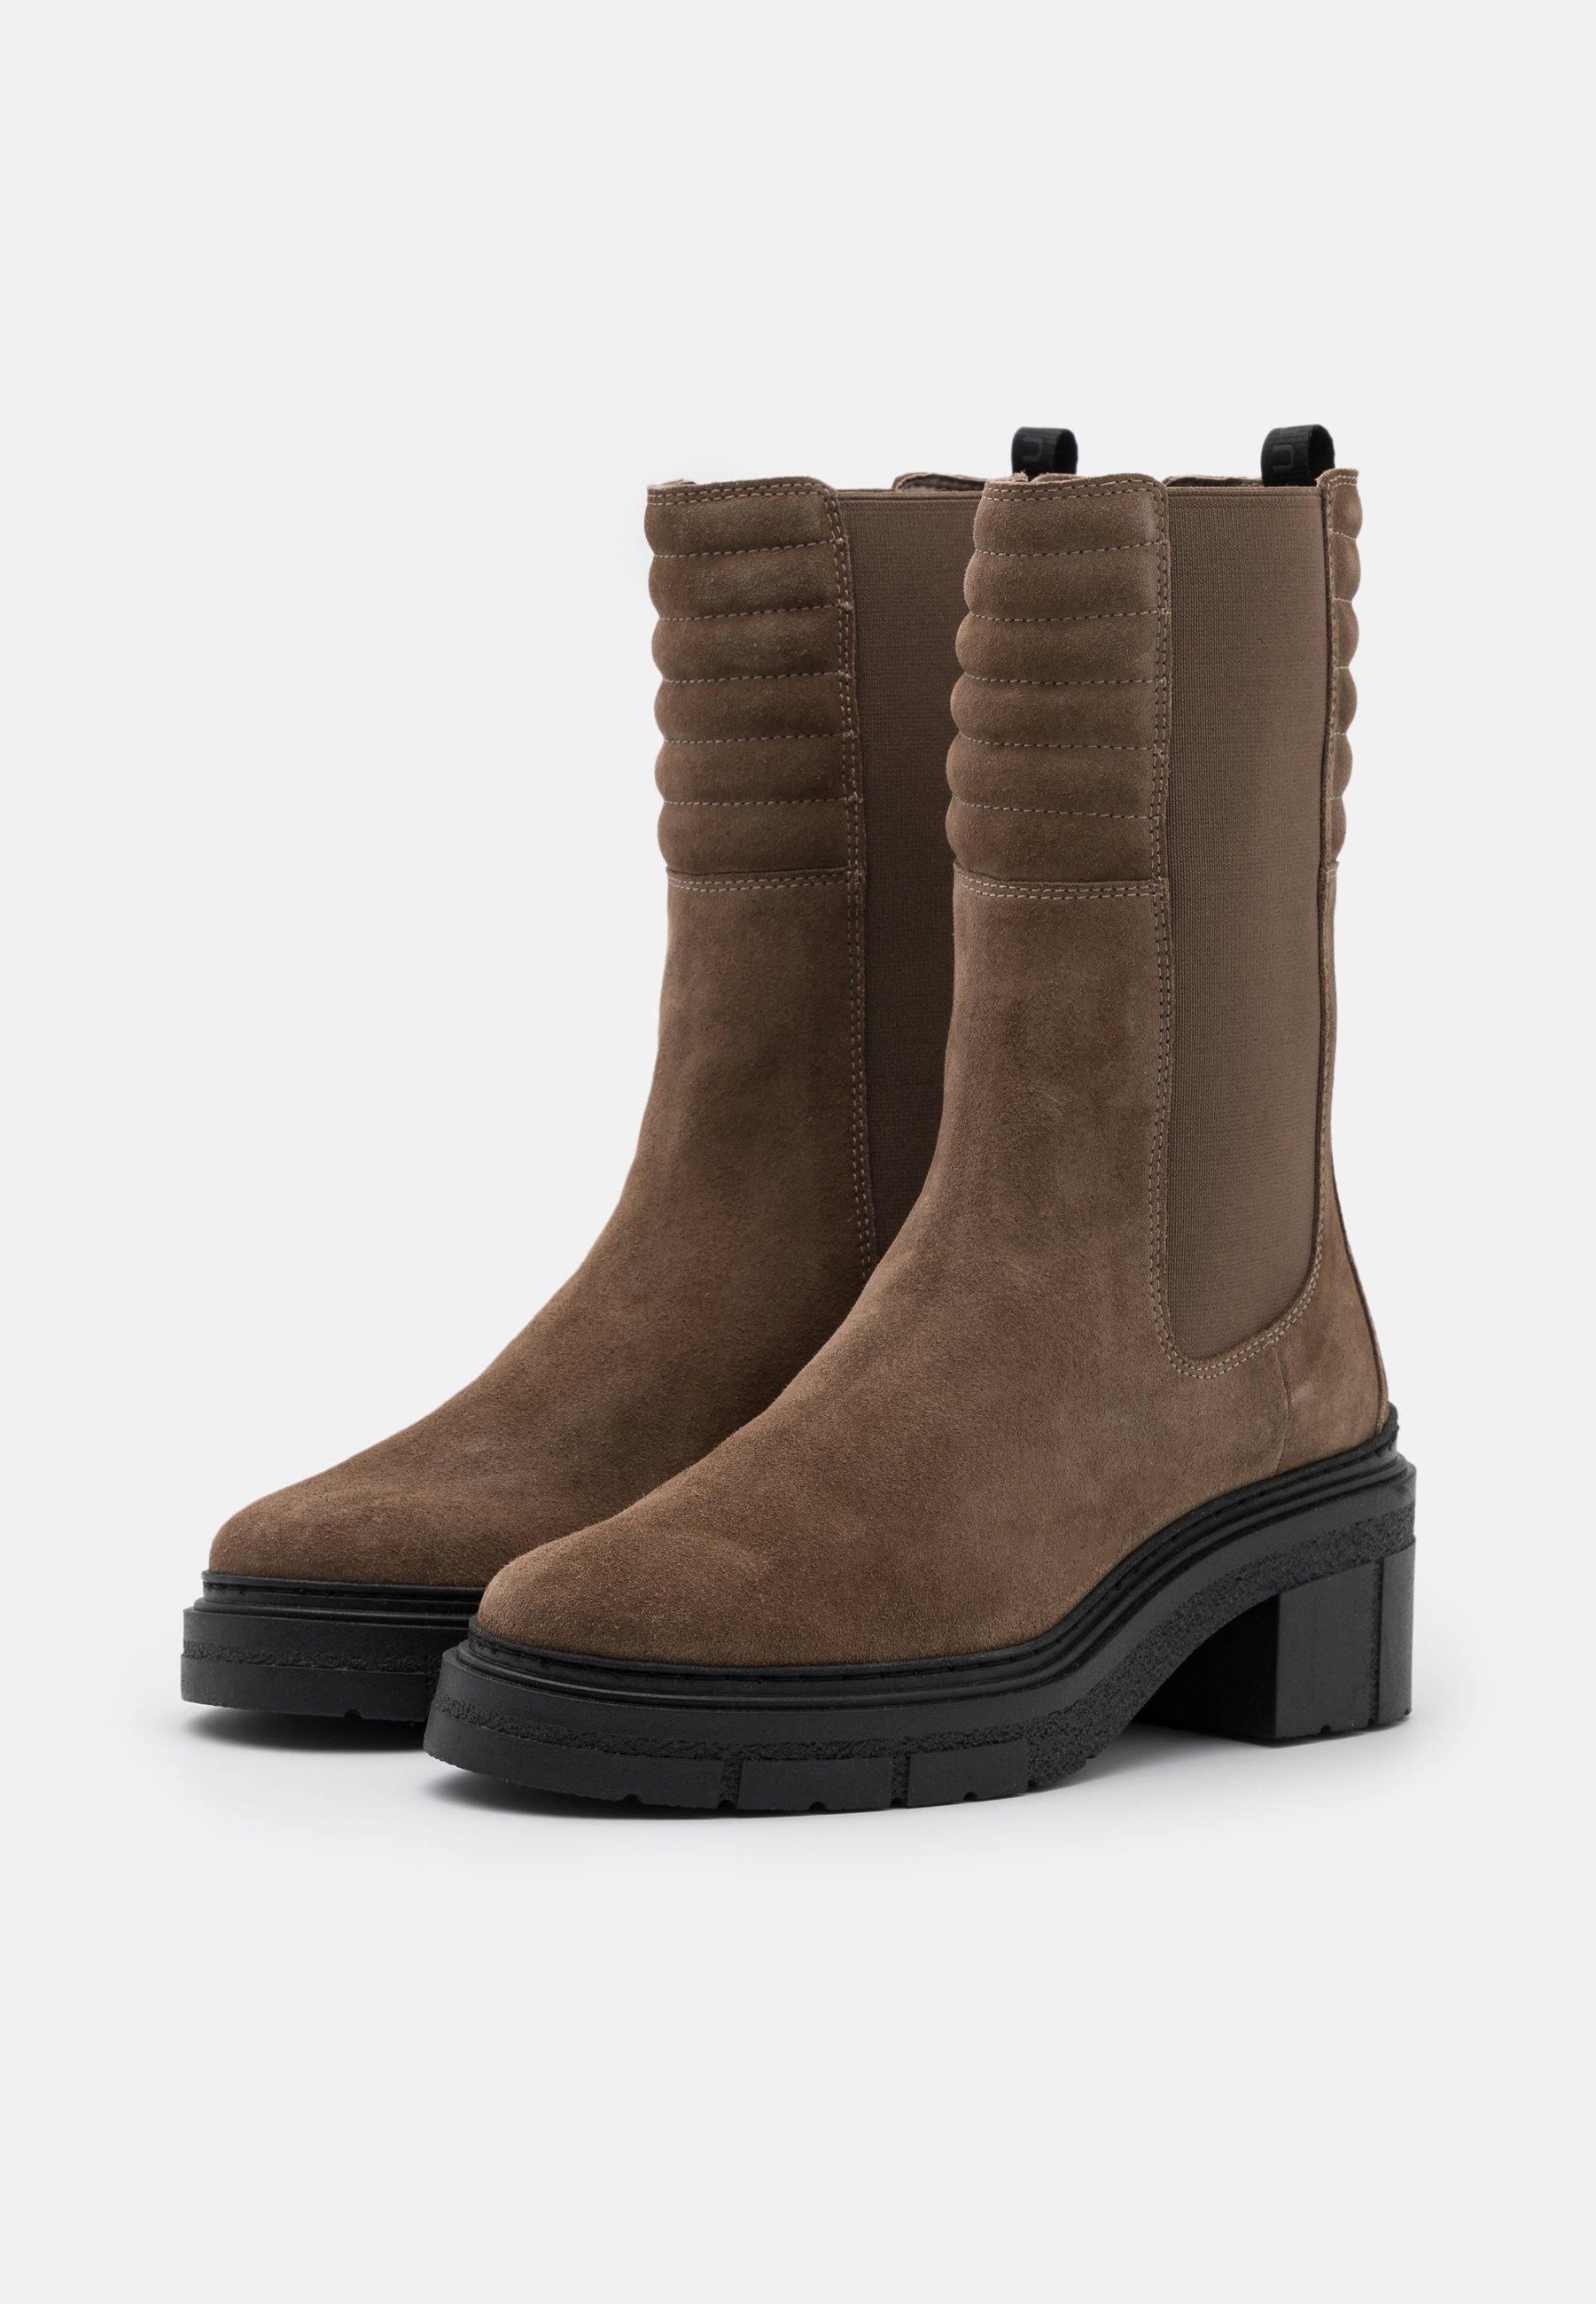 Unisa JINA Plateaustiefel taupe/taupe